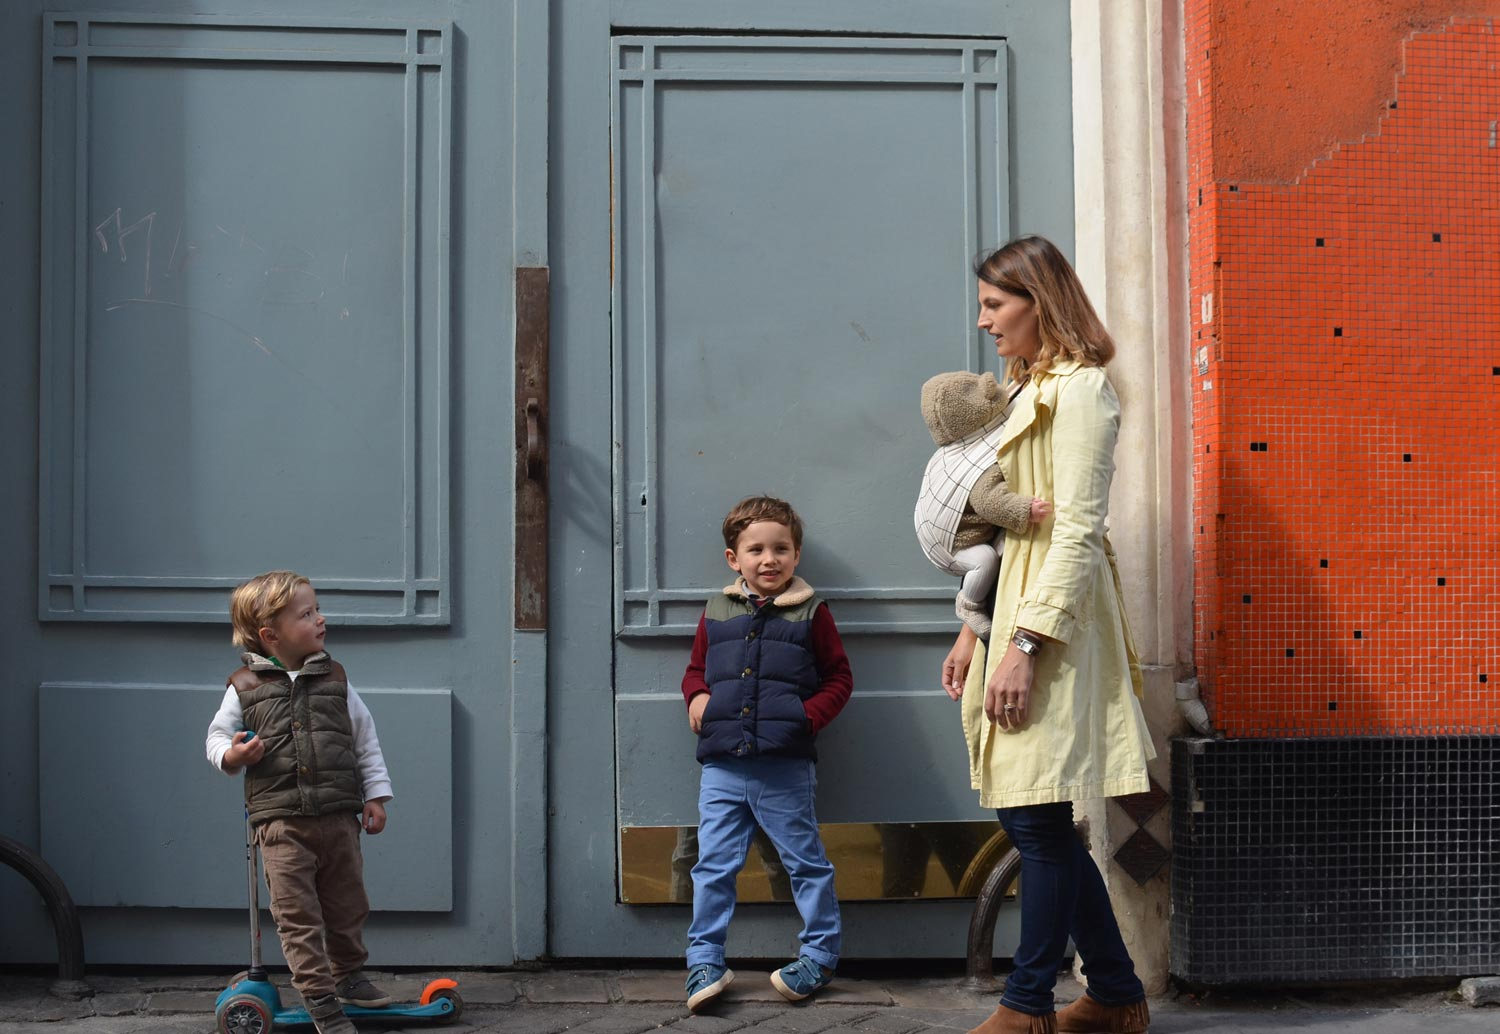 Maï de Colnet with kids shares her local tips in Paris' 17th arrondissement with Babyccino Kids